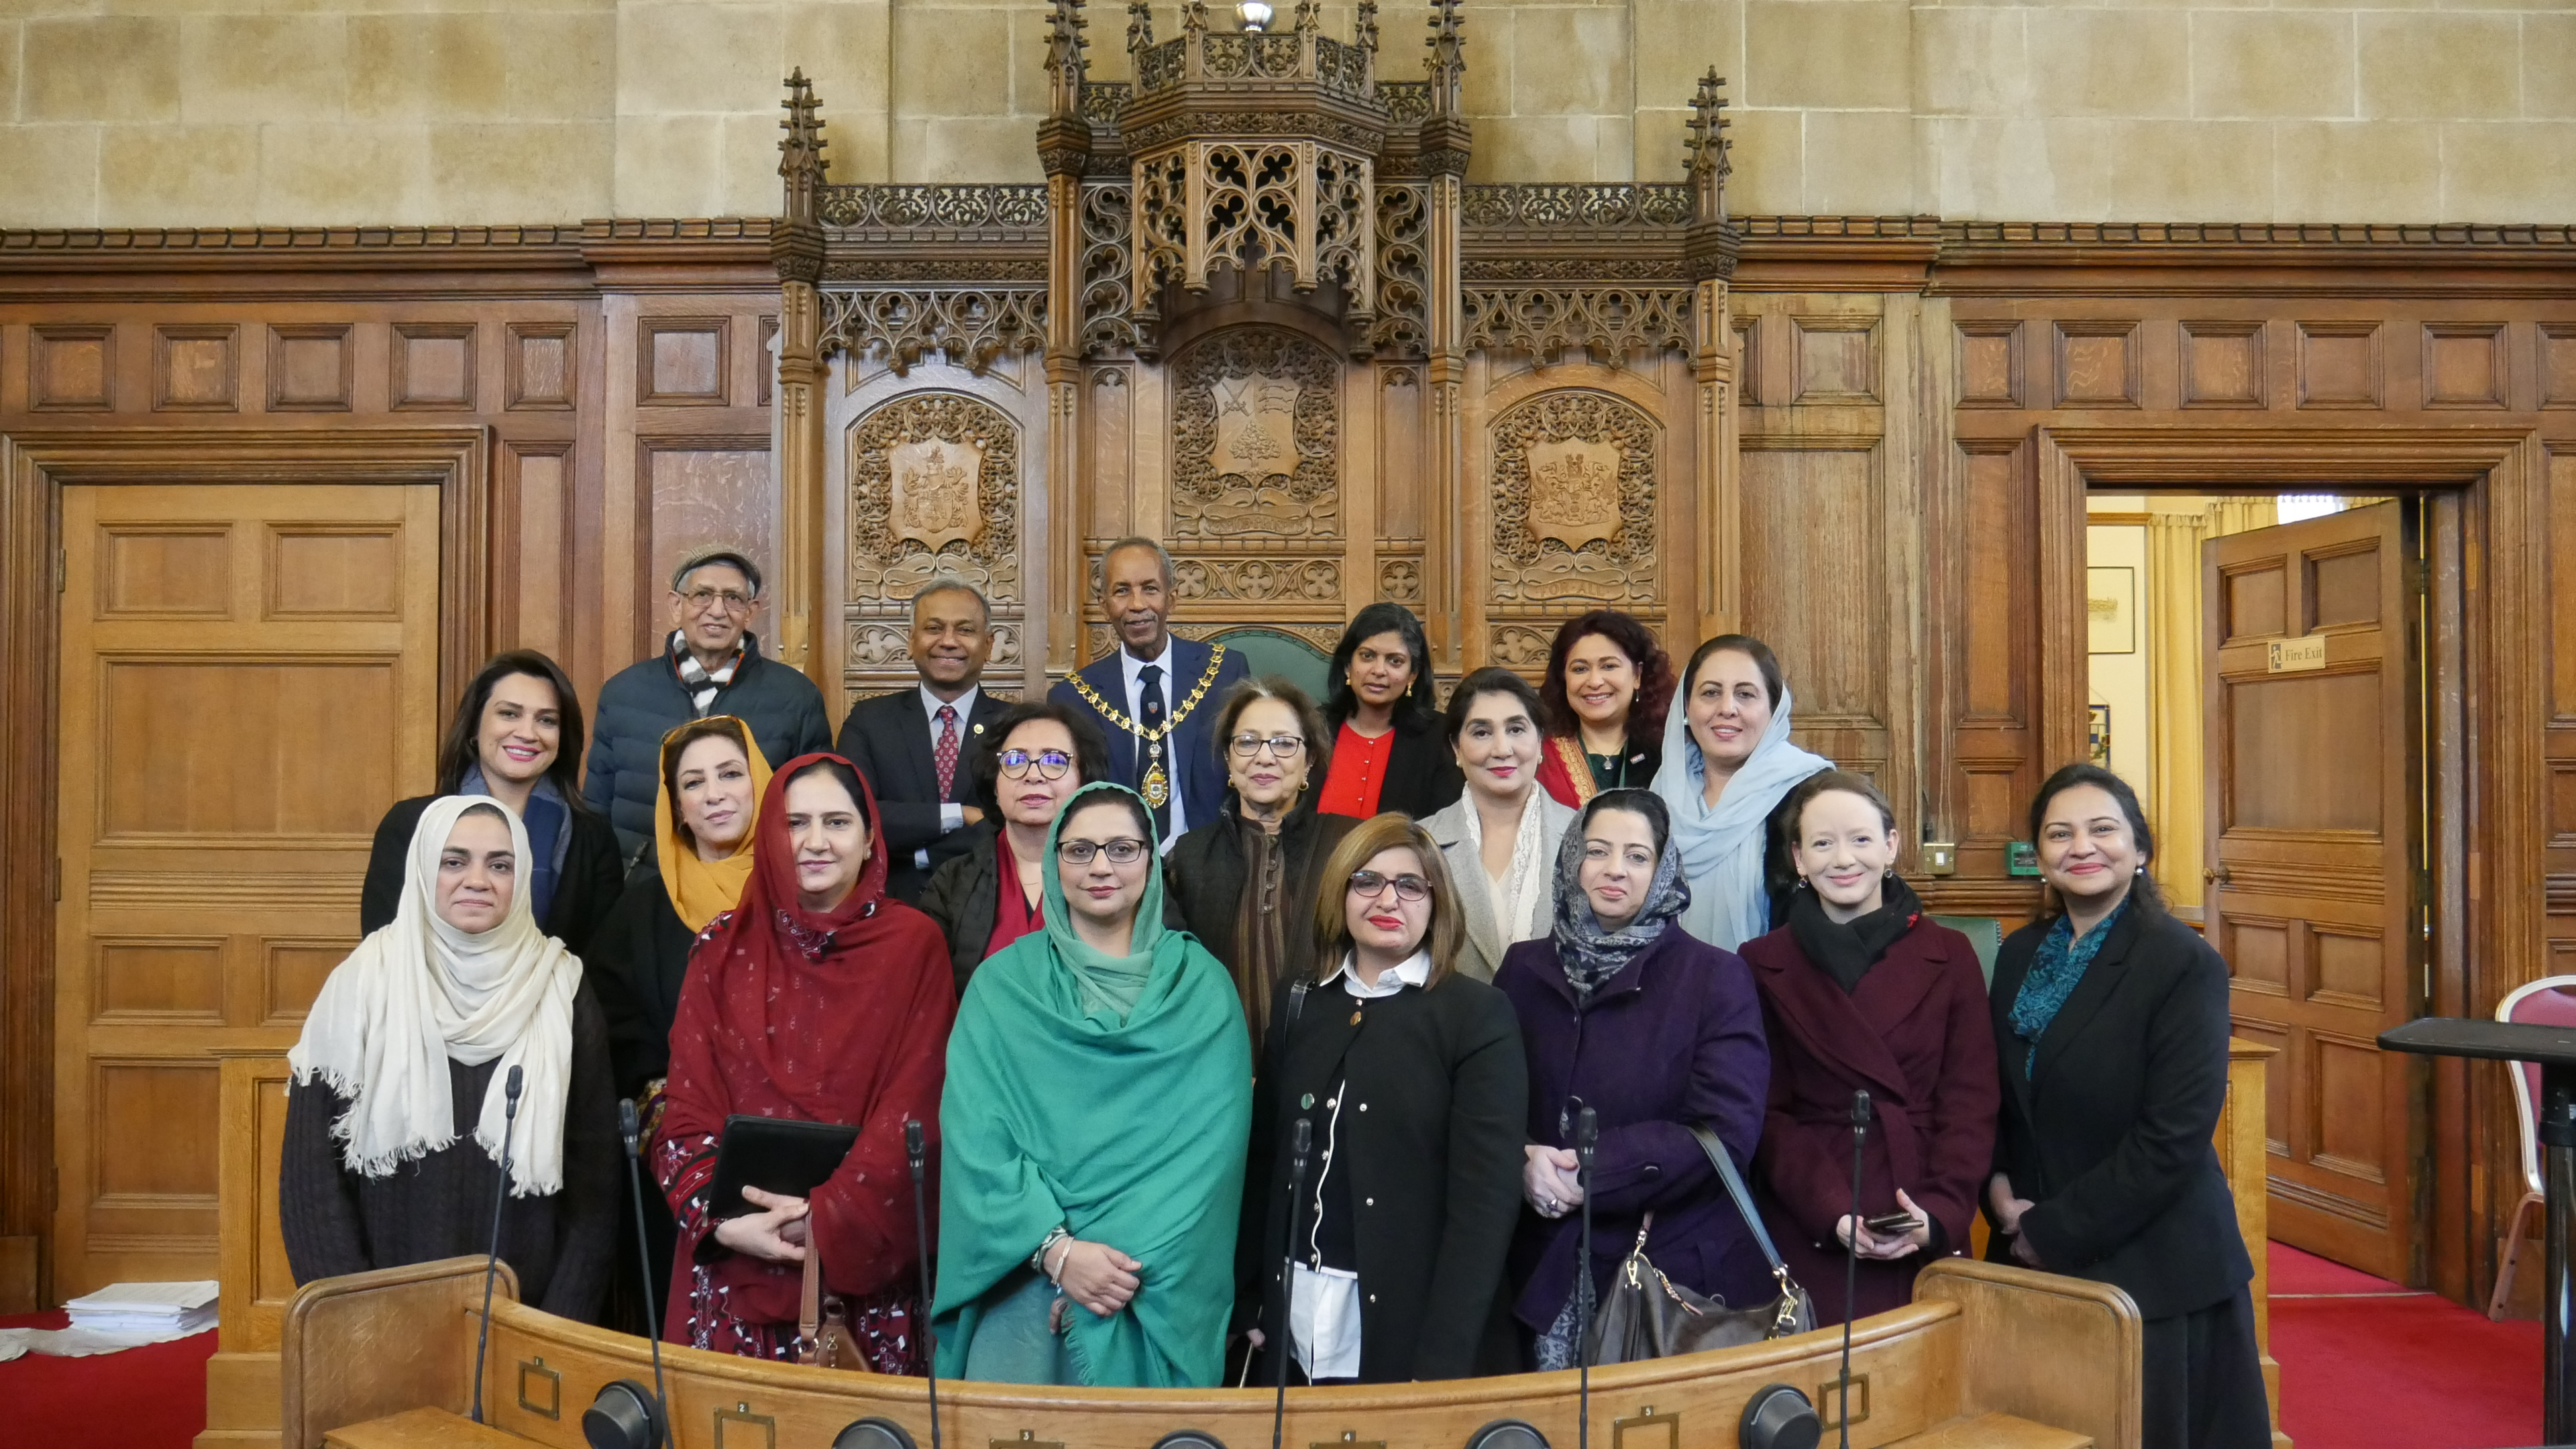 Dr Rupa Huq MP, Ealing Mayor Councillor Dr Abdullah Gulaid, Ealing Council Leader Julian Bell, Councillors Dr Aysha Raza and Tariq Mahmood hosted the delegation at Ealing Town Hall